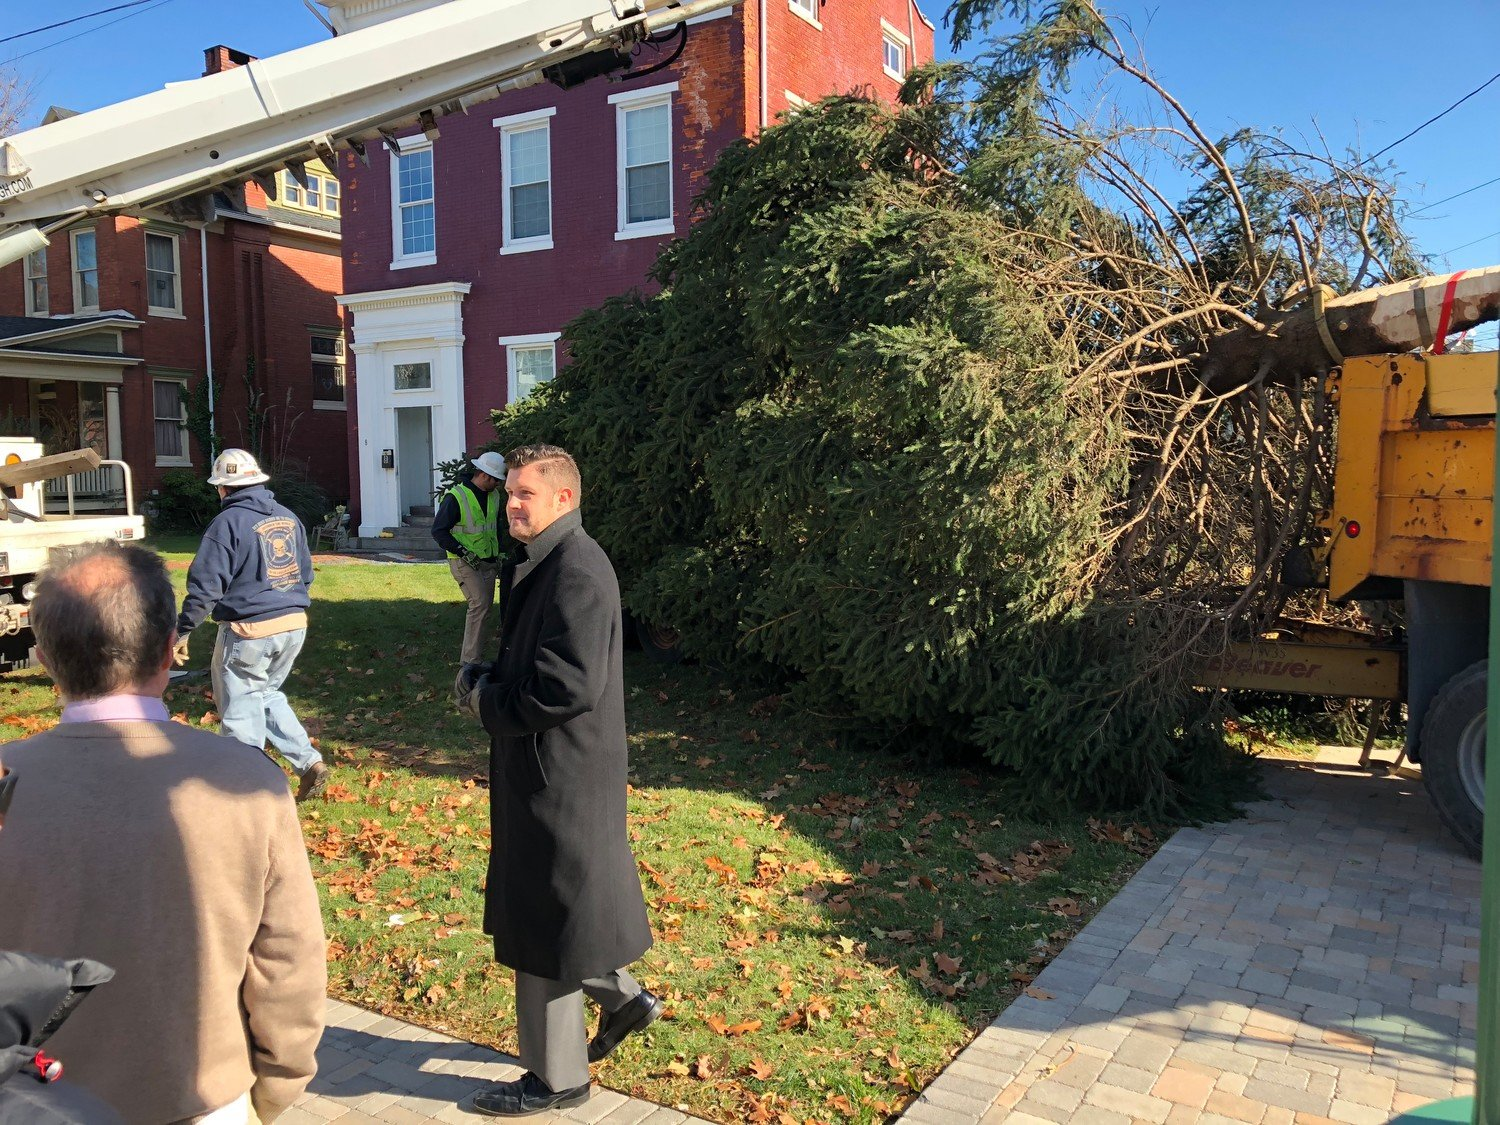 Mayor James H. Curry III was on hand in November 2017 when the Christmas tree was put in place in advance of the borough's annual Christmas tree-lighting ceremony, on the McNair House property at the corner of Union and Emaus streets. The ceremony was held at St. Peter's Kierch in 2018, and the mayor said he prefers it continue to be held there.